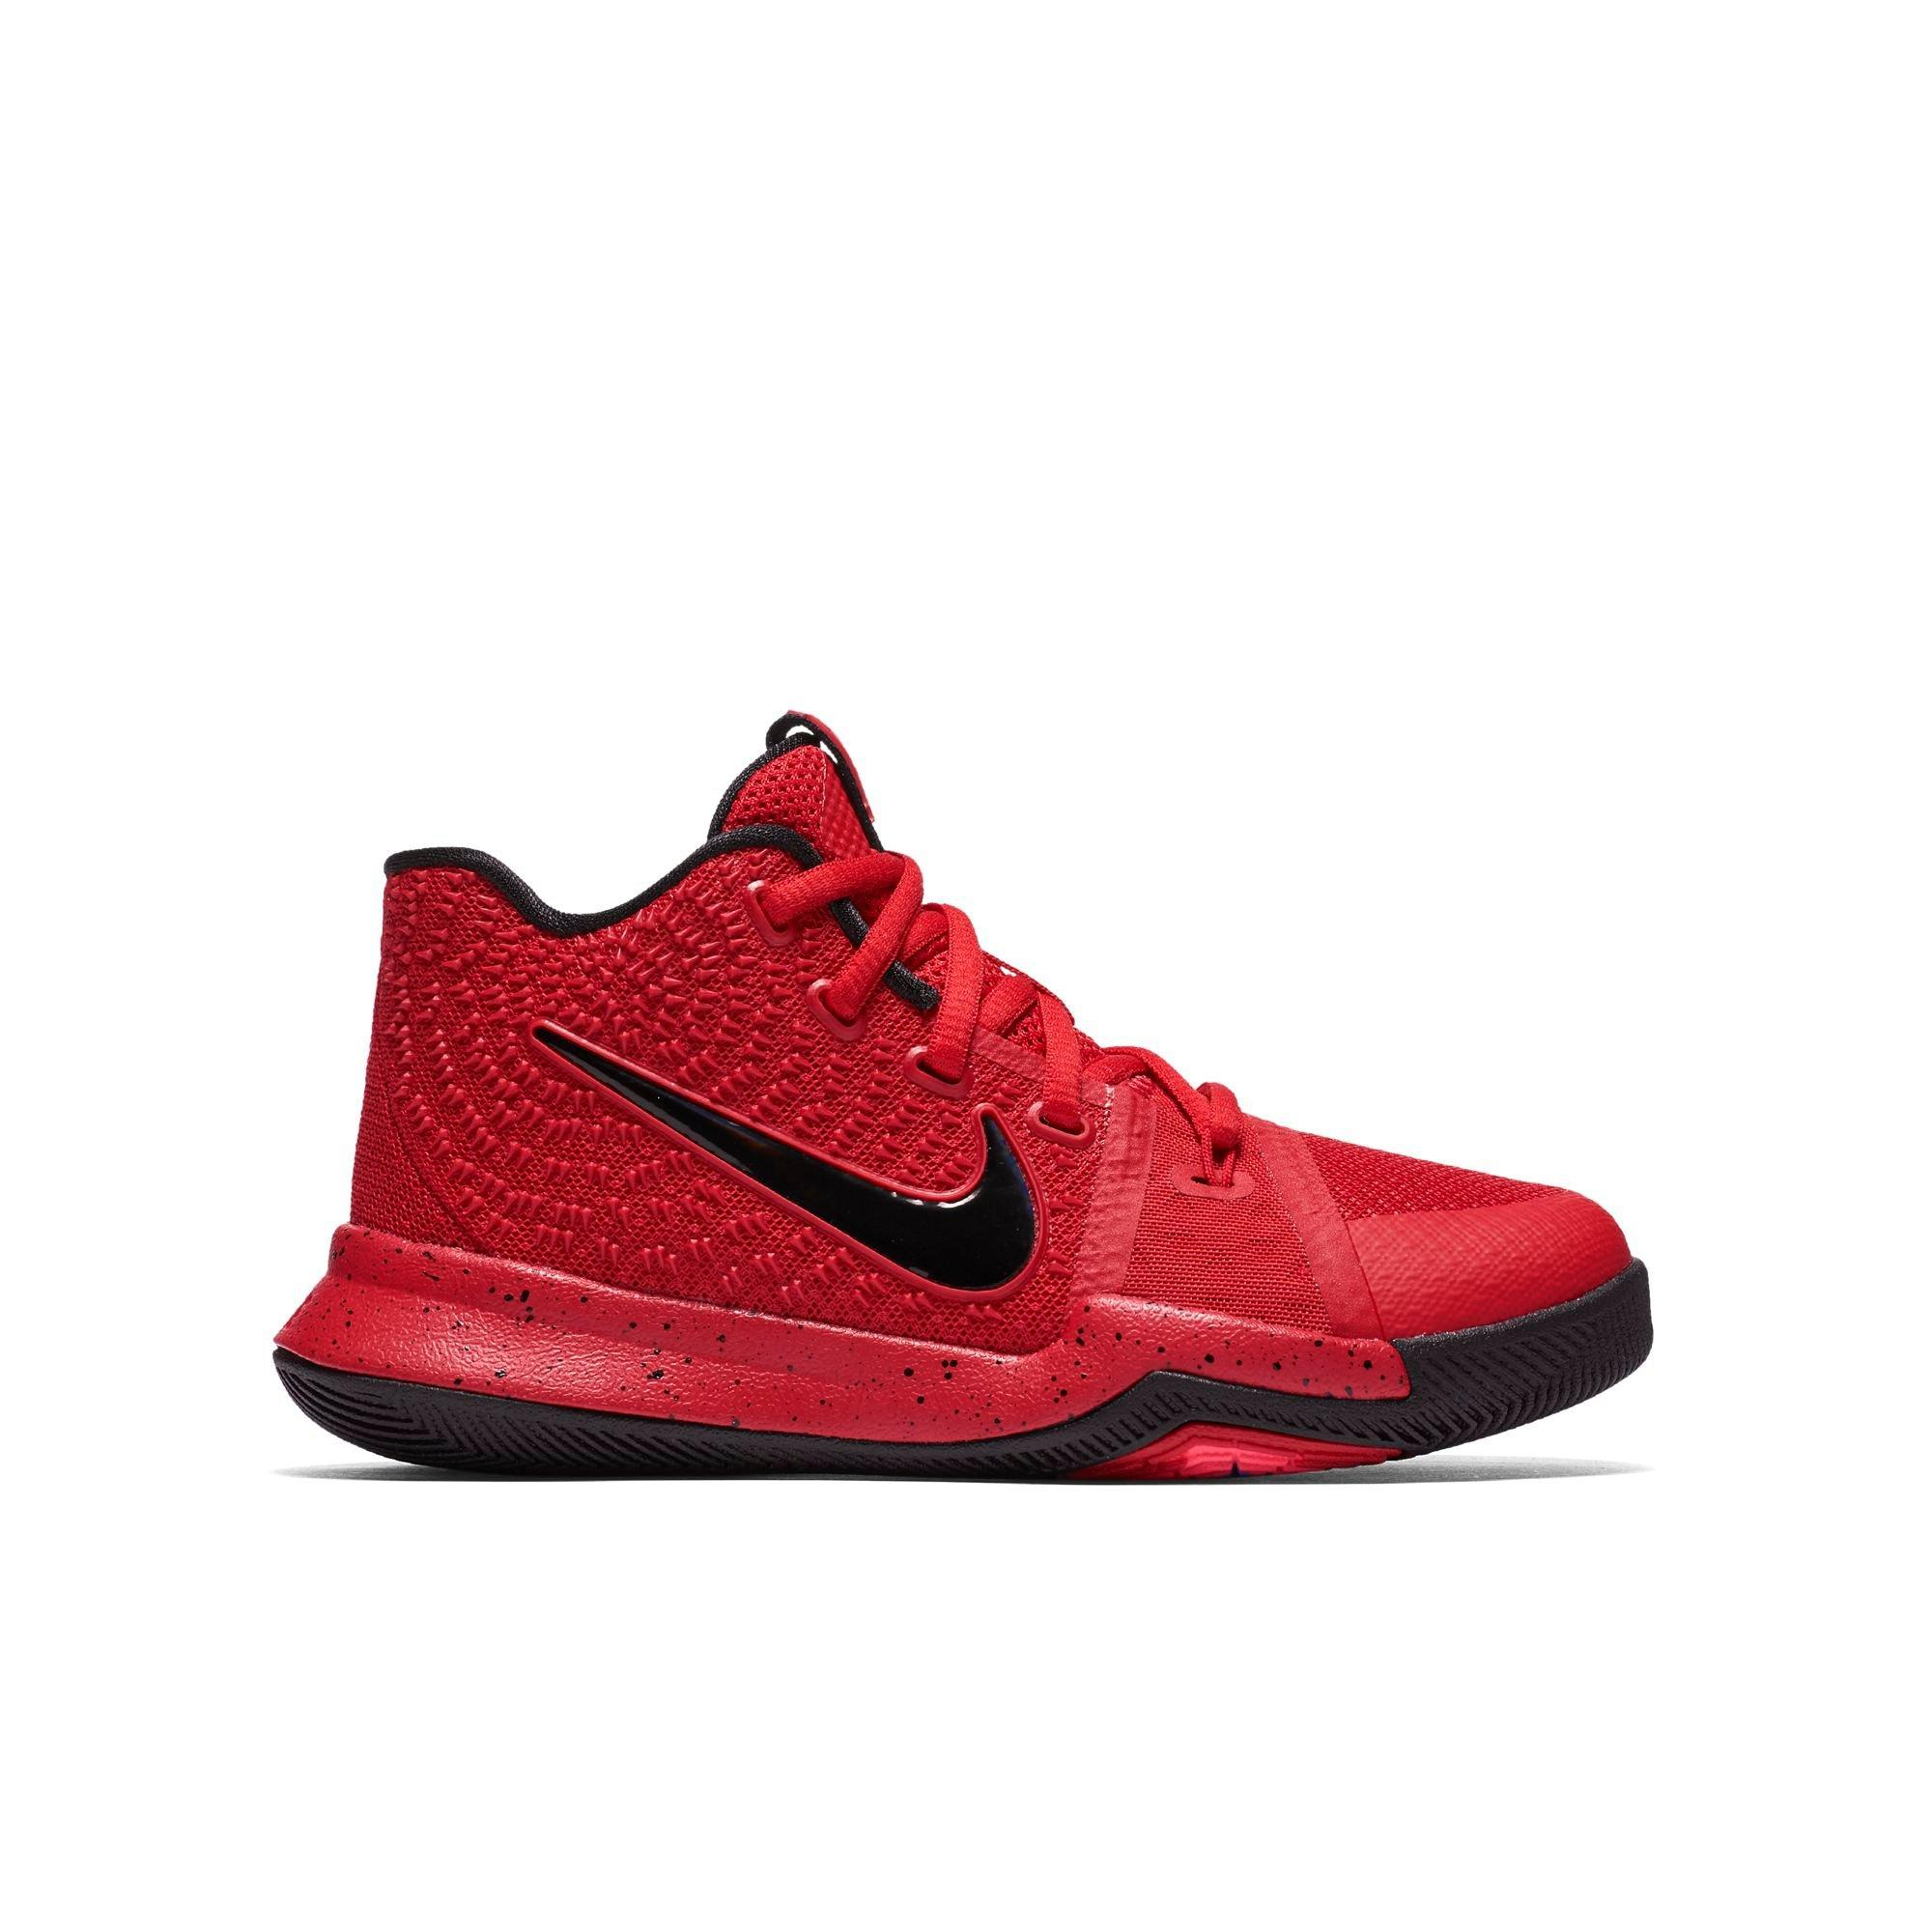 103efdf686bd6a kids kyrie irving shoes kd shoes for women